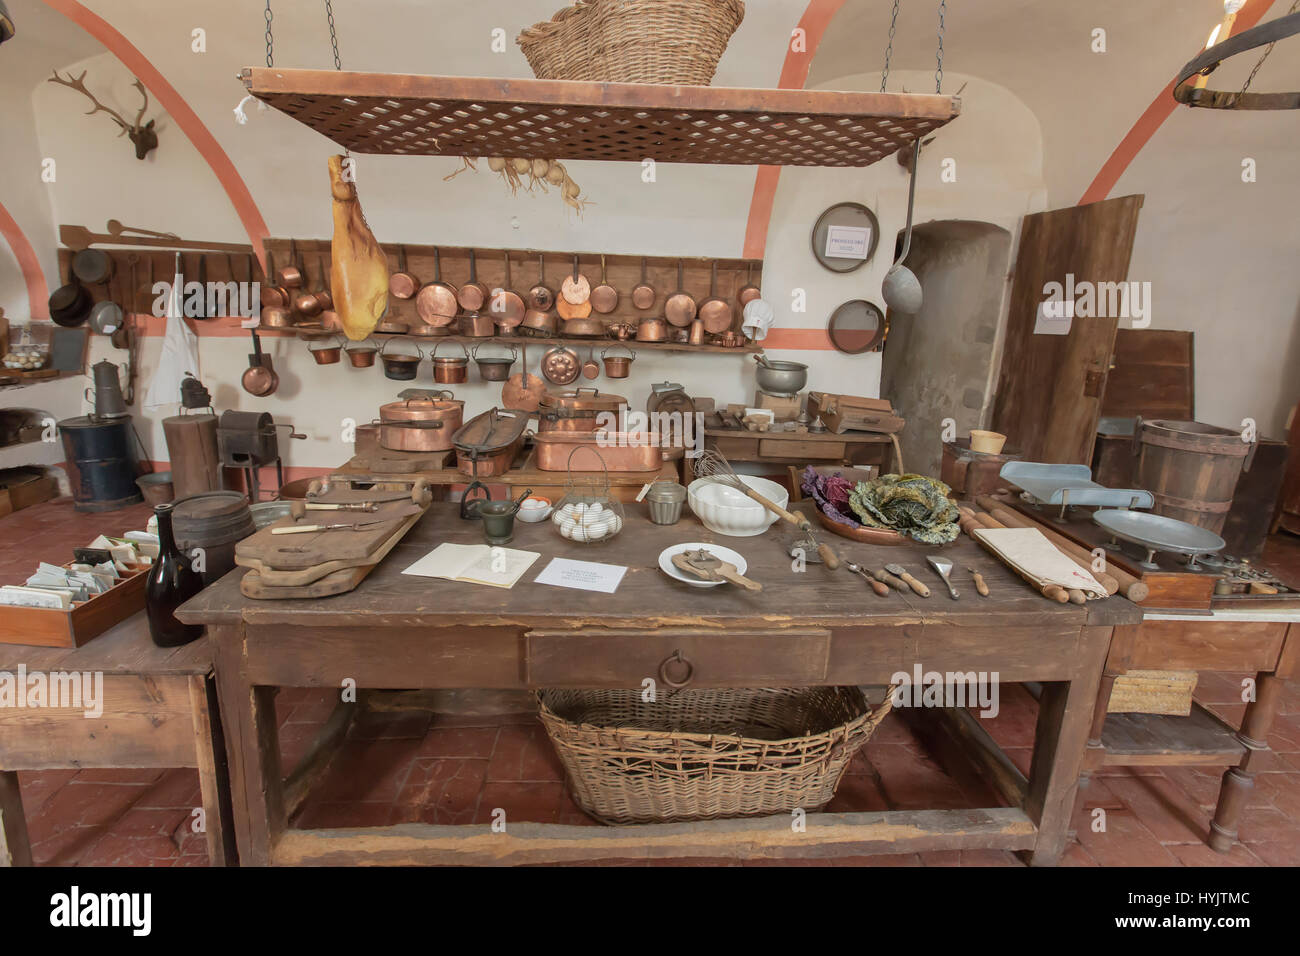 Kitchen Of The Castle Stockfotos & Kitchen Of The Castle Bilder ...